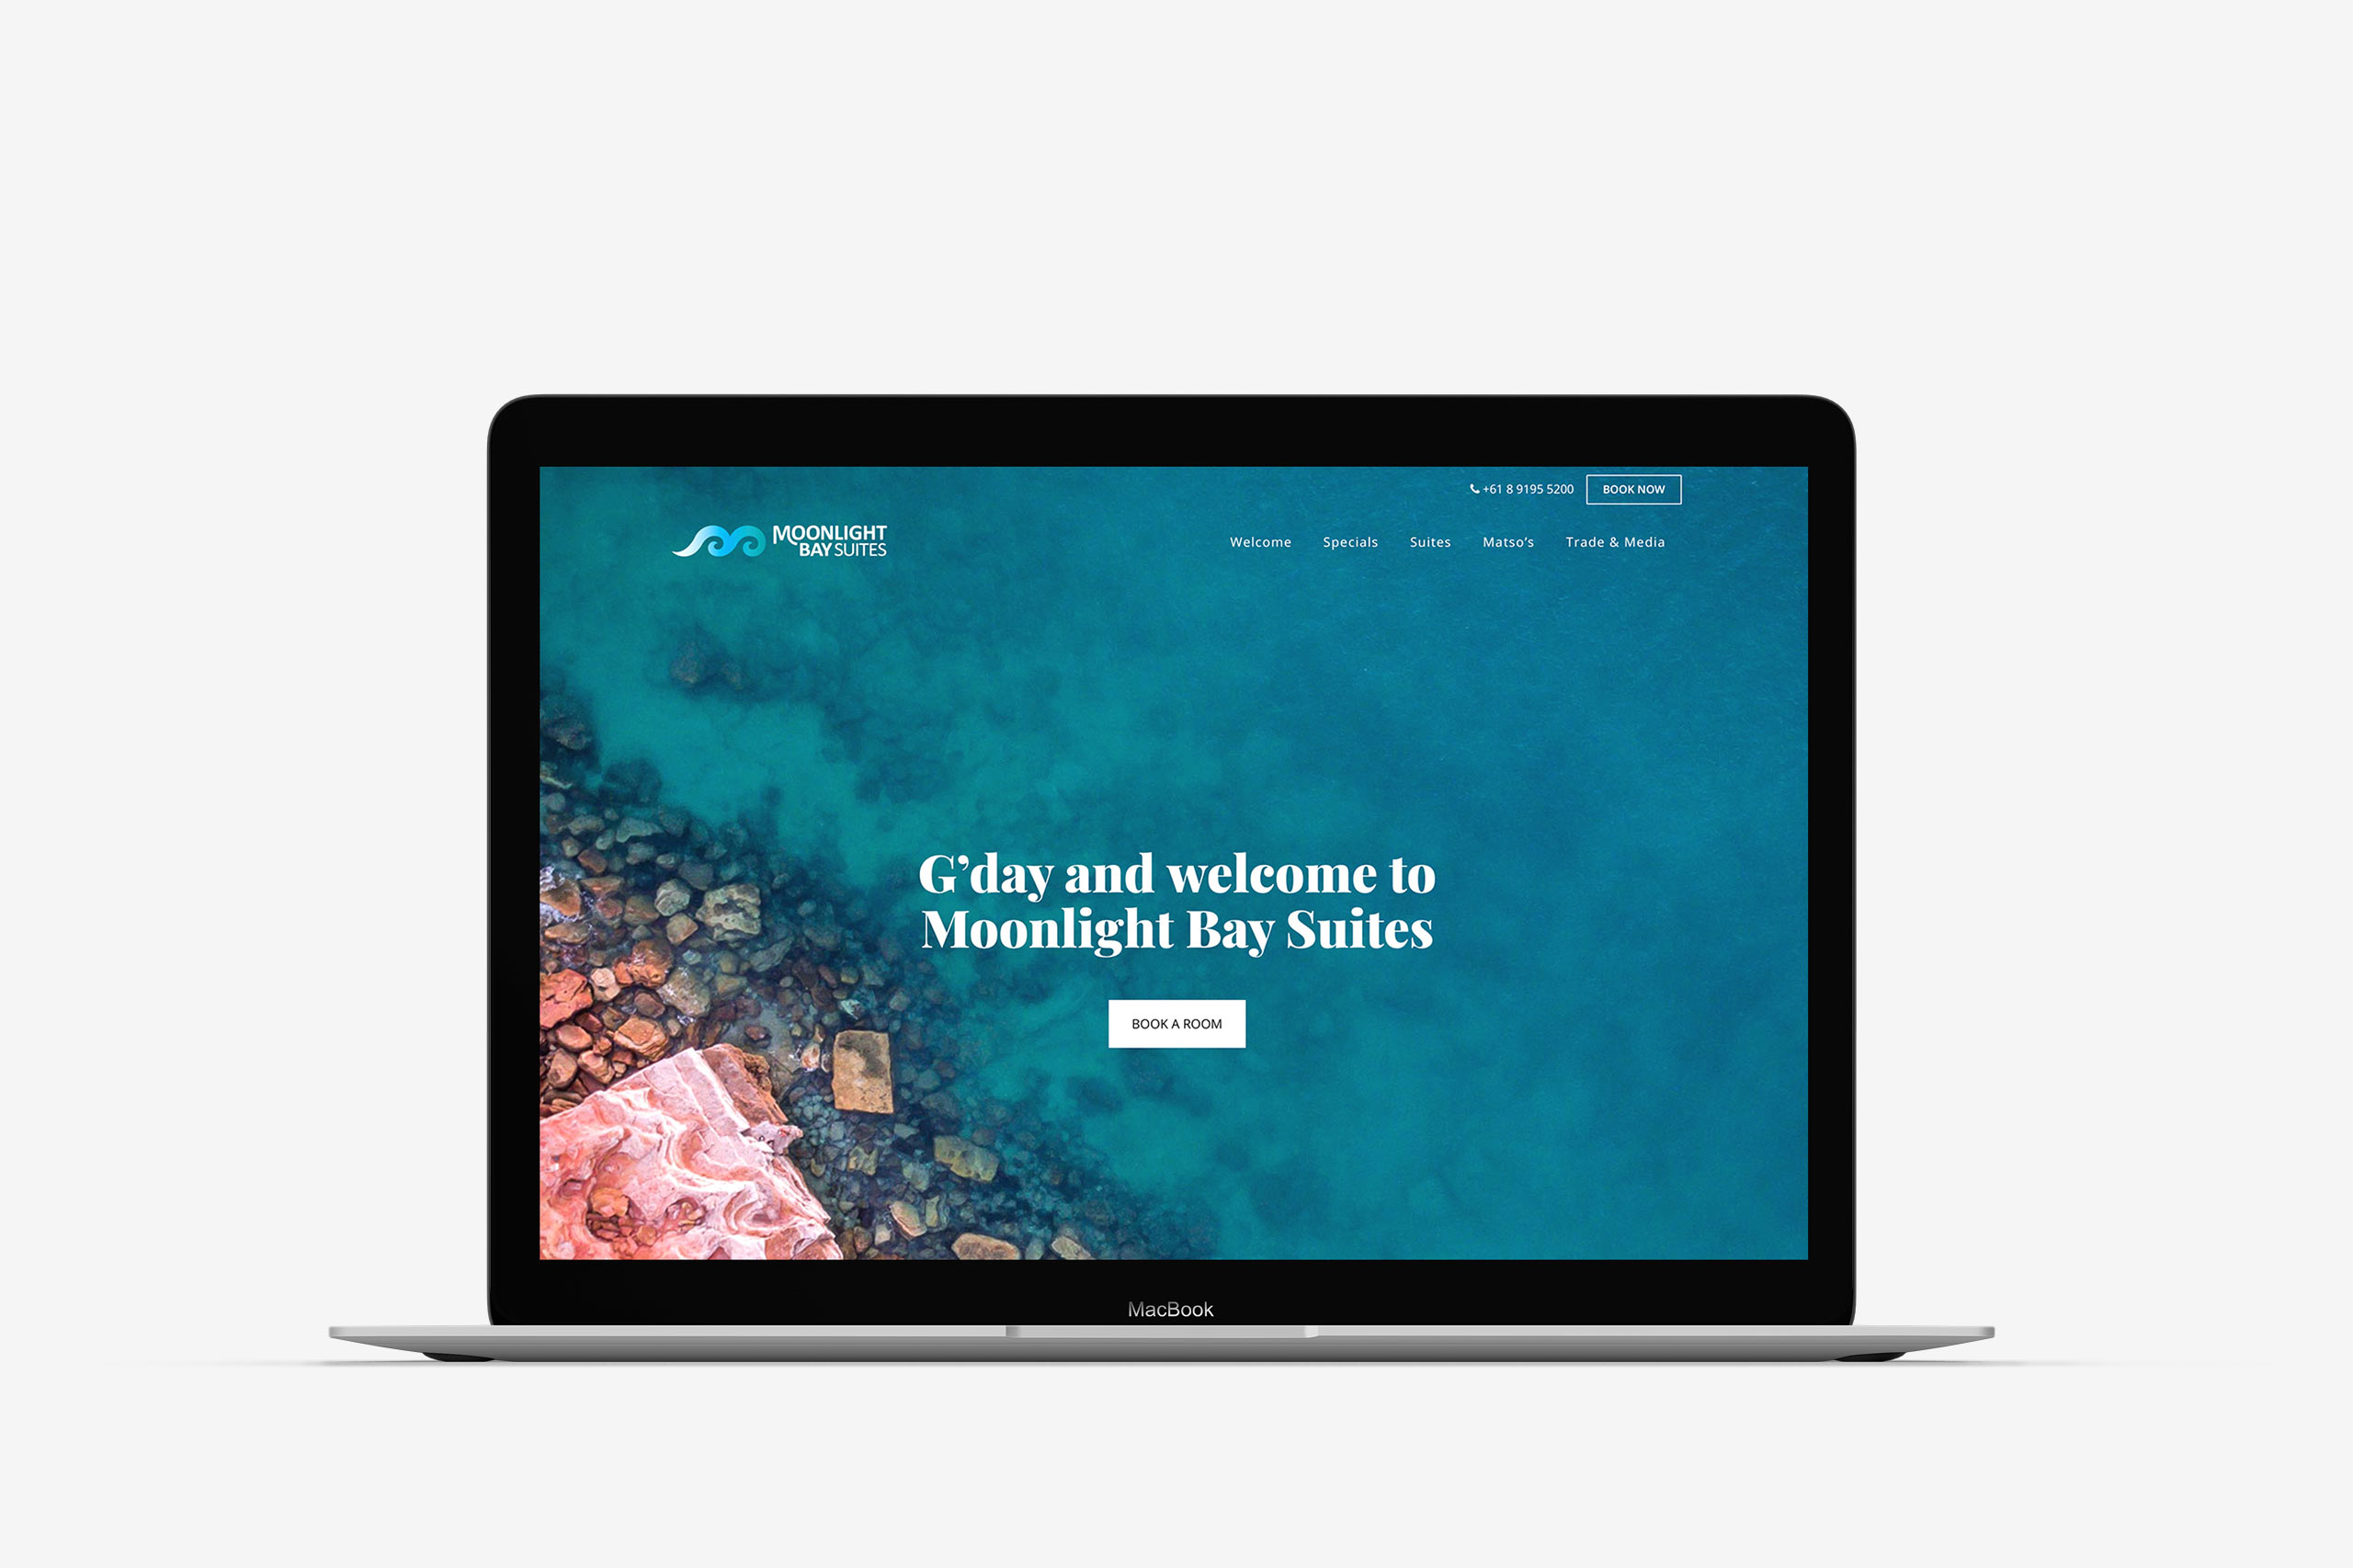 moonlight bay suites website design maker and co design